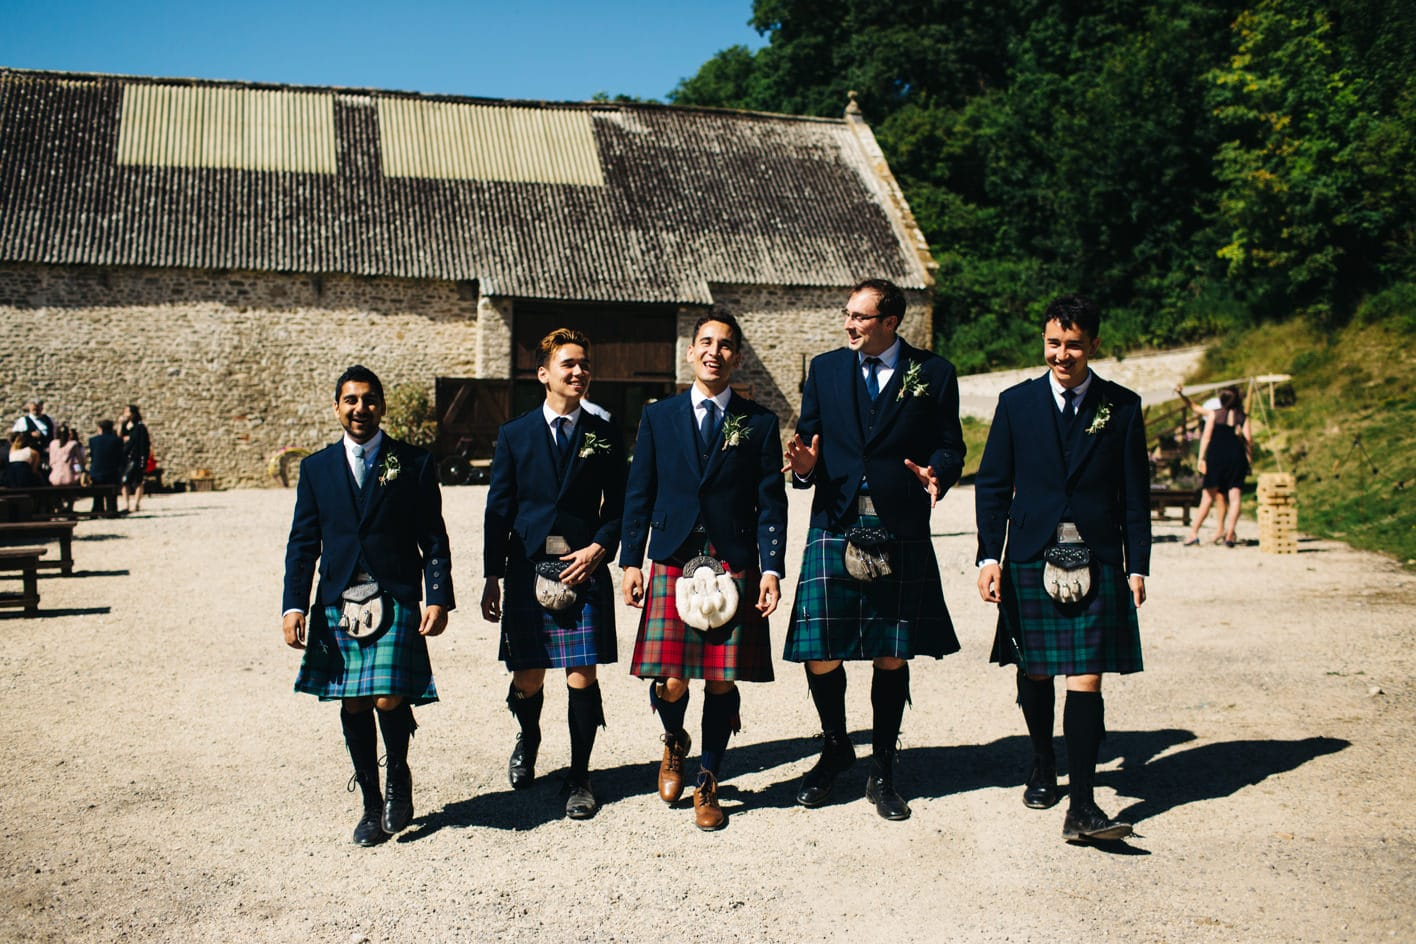 groom and ushers in kilts